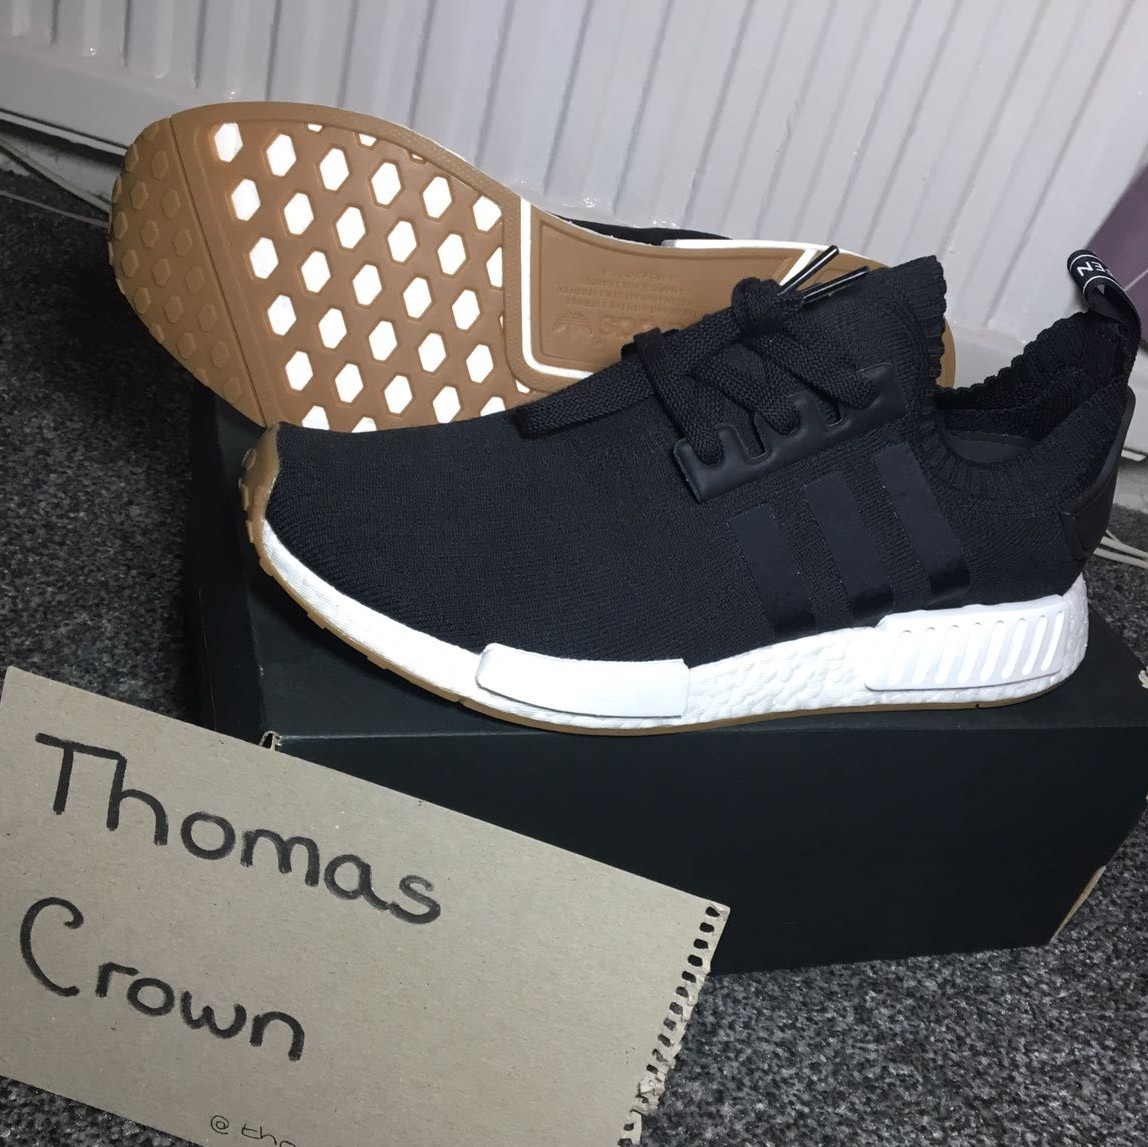 Adidas Nmd R1 Primeknit Gum Pack Black Uk10 Ds Depop